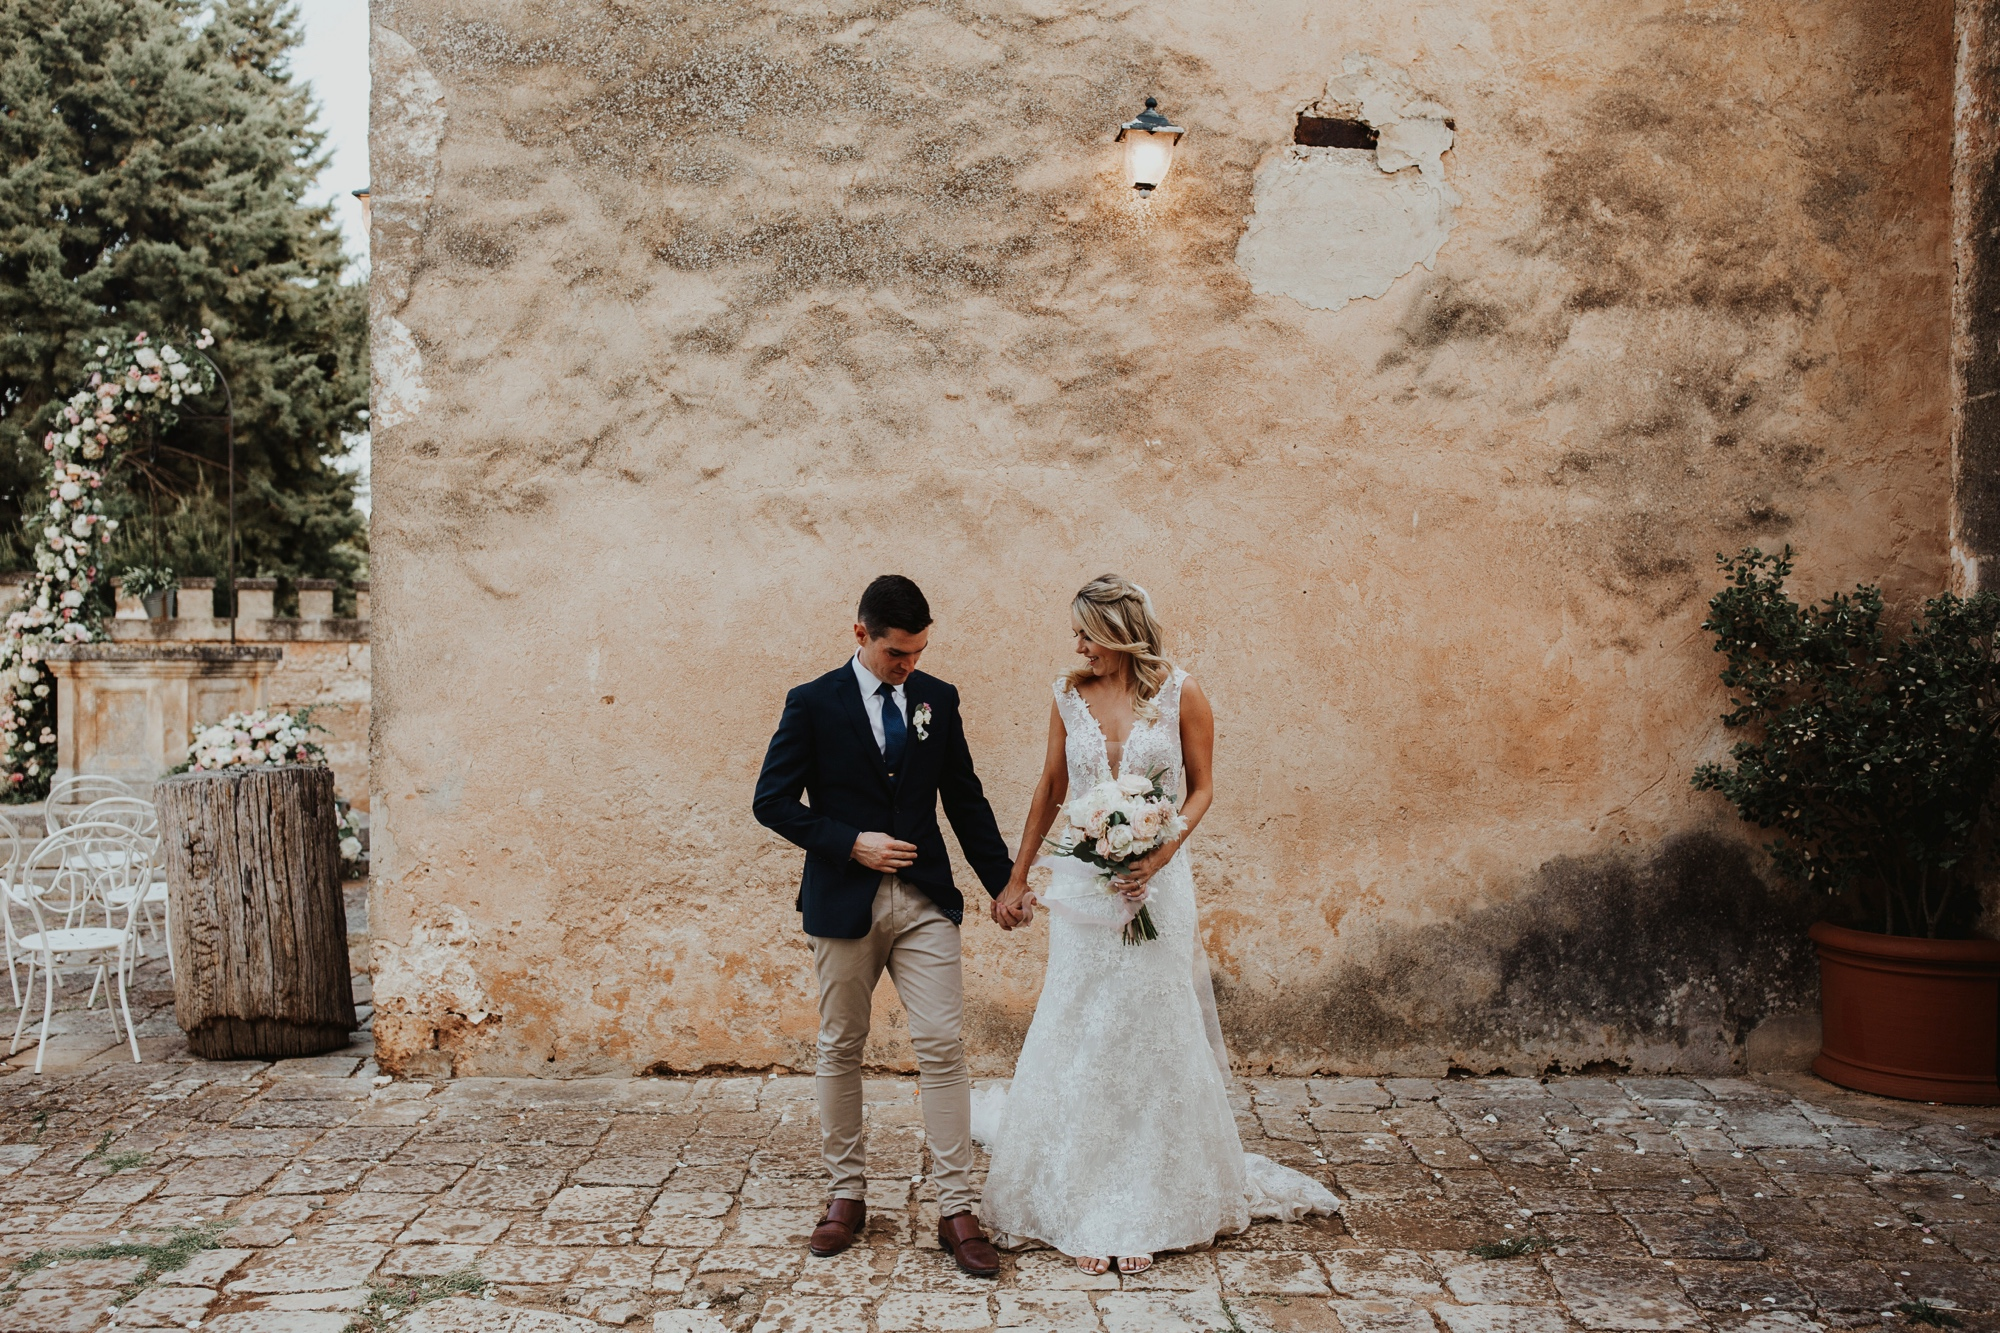 0000000057_Rob and Lucy-627_Weddings_Destination_Italy_got_Just_Engaged.jpg